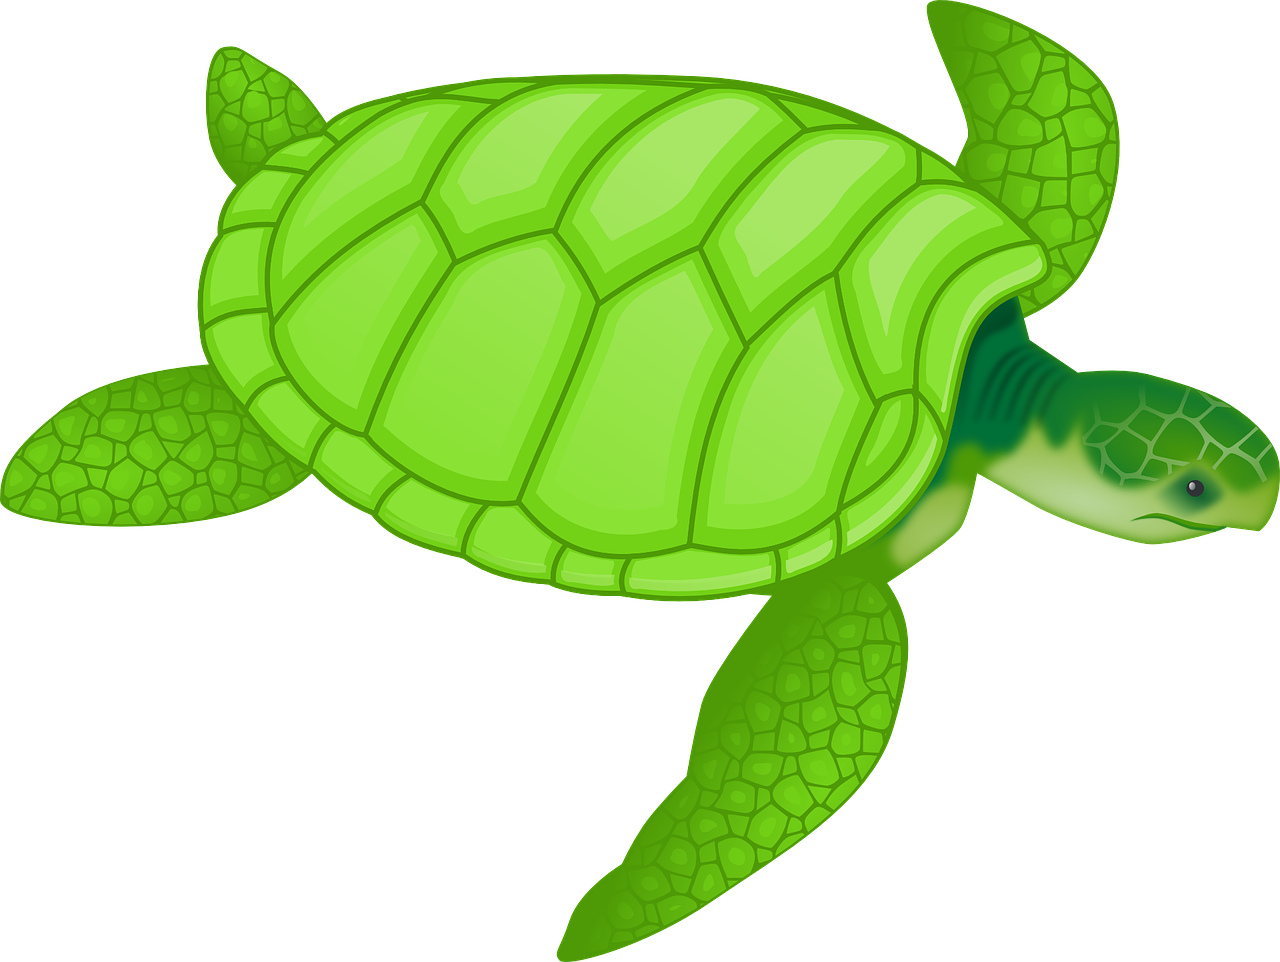 Tortoise green reptiles turtles. Playdough clipart transparent